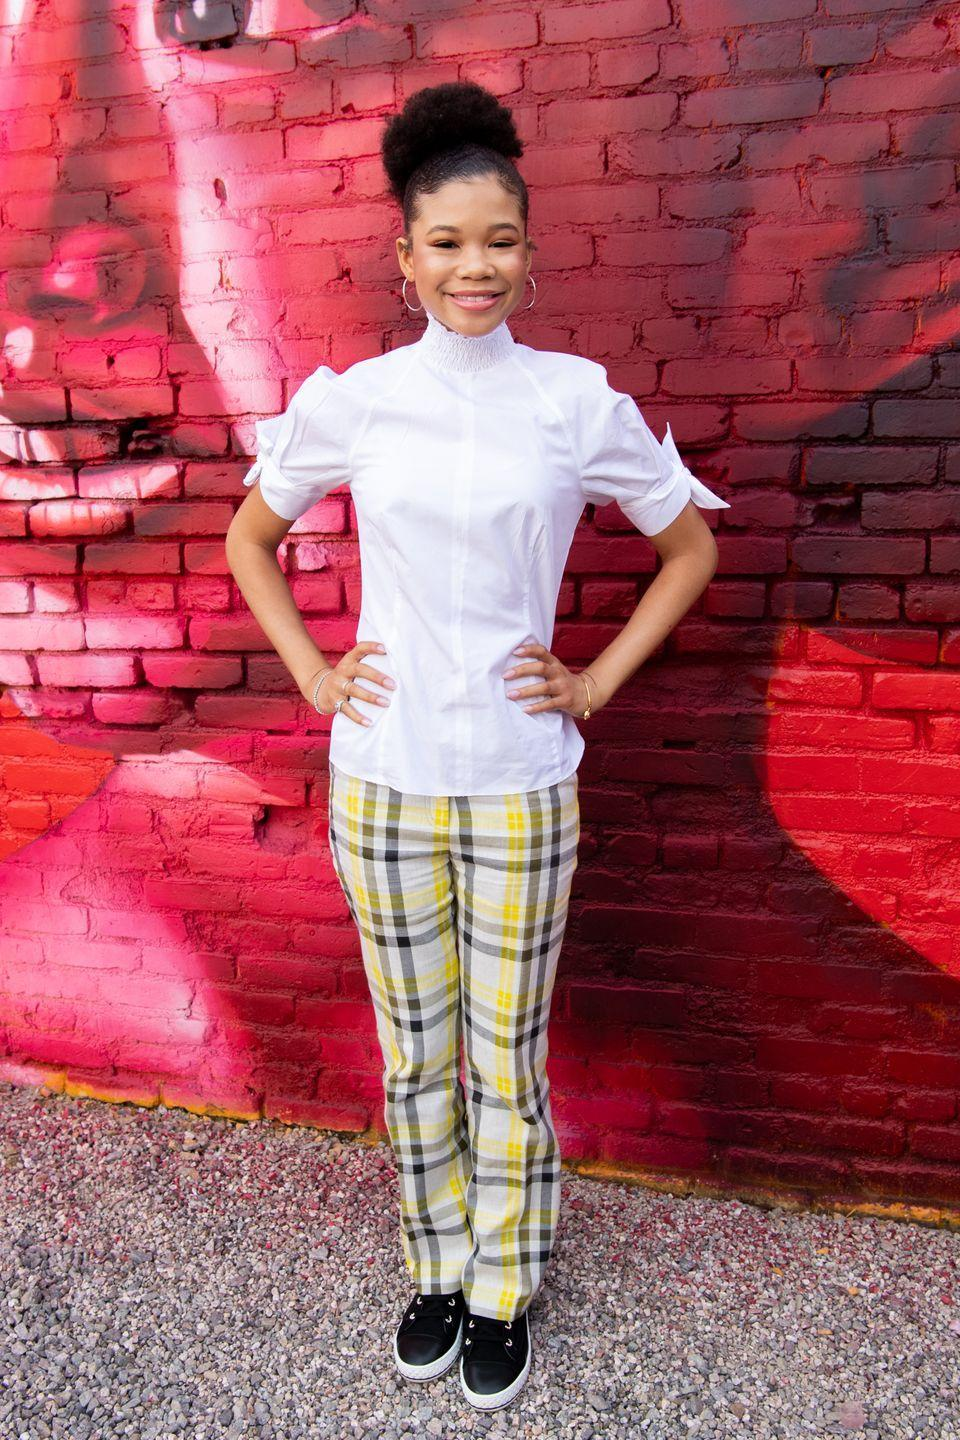 <p>While everyone else is out here making their plaid pants look grungy, take a note from Storm Reid and go preppy. A crisp white button up and sneakers makes the bold pants feel dressy, but still chill enough for class. </p>